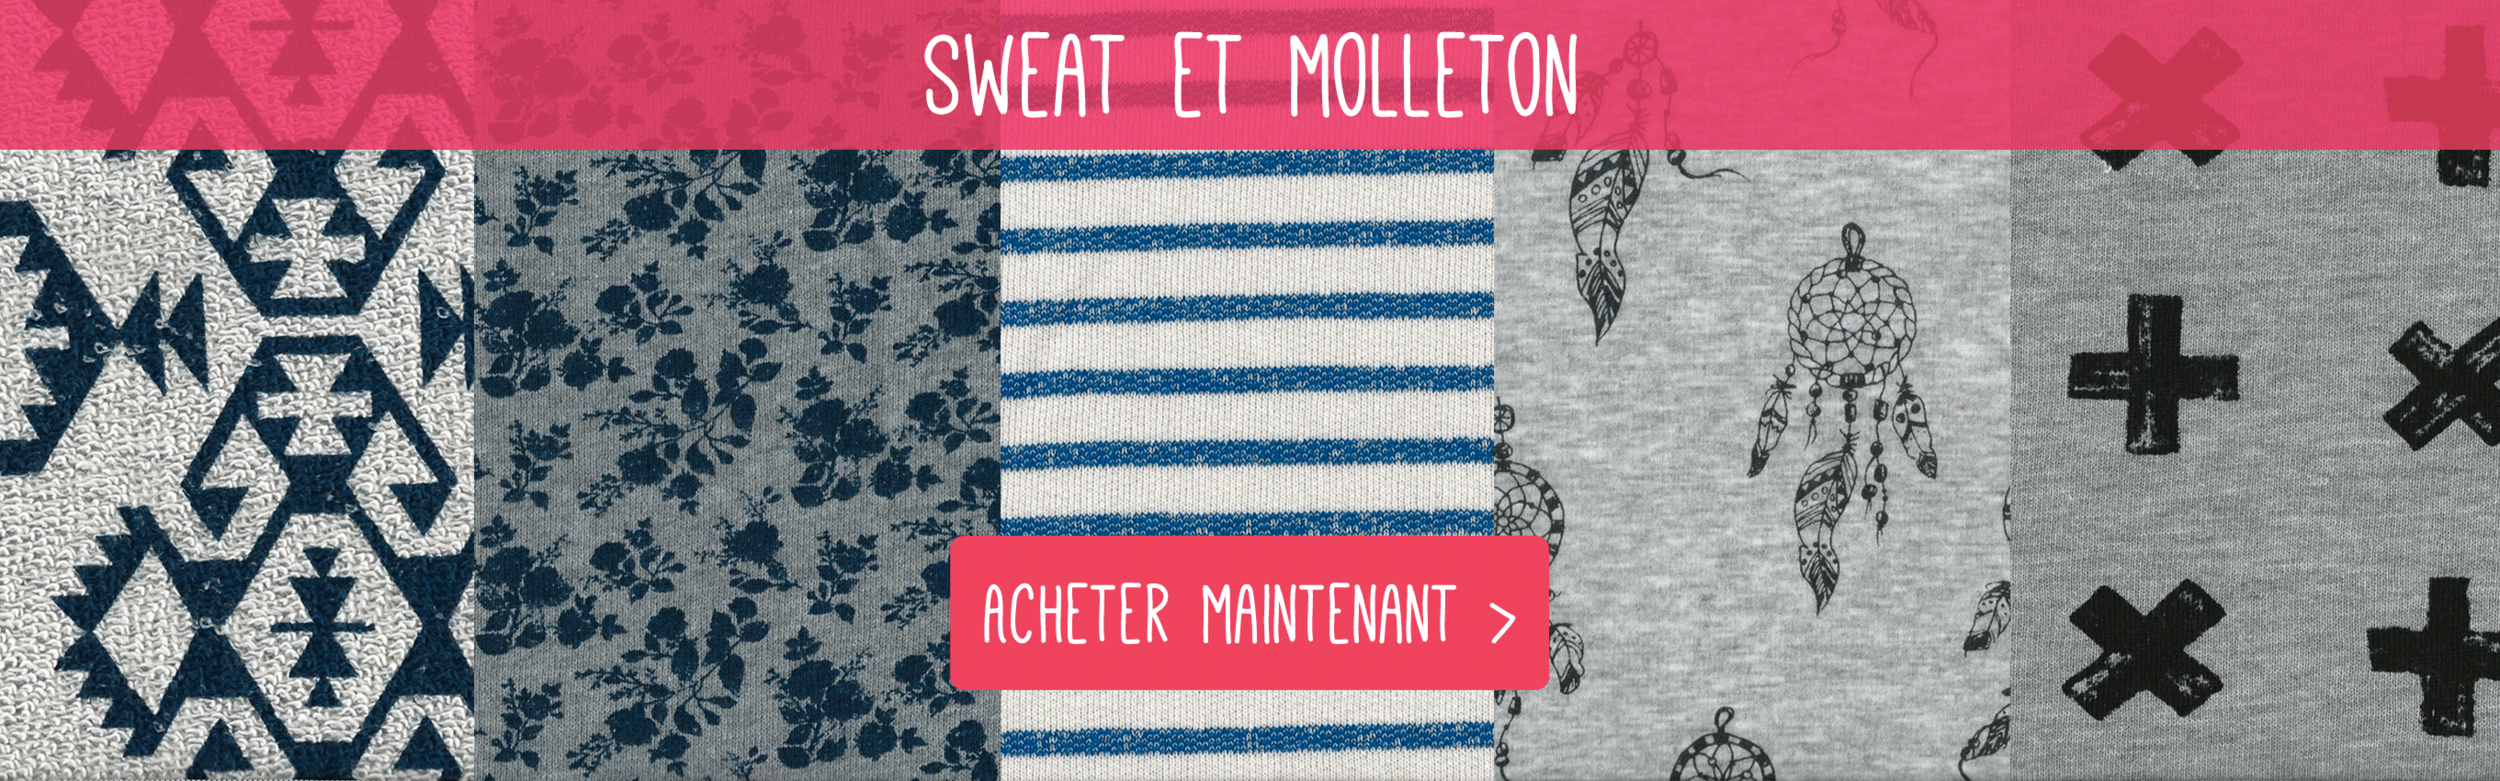 Sweat et molleton